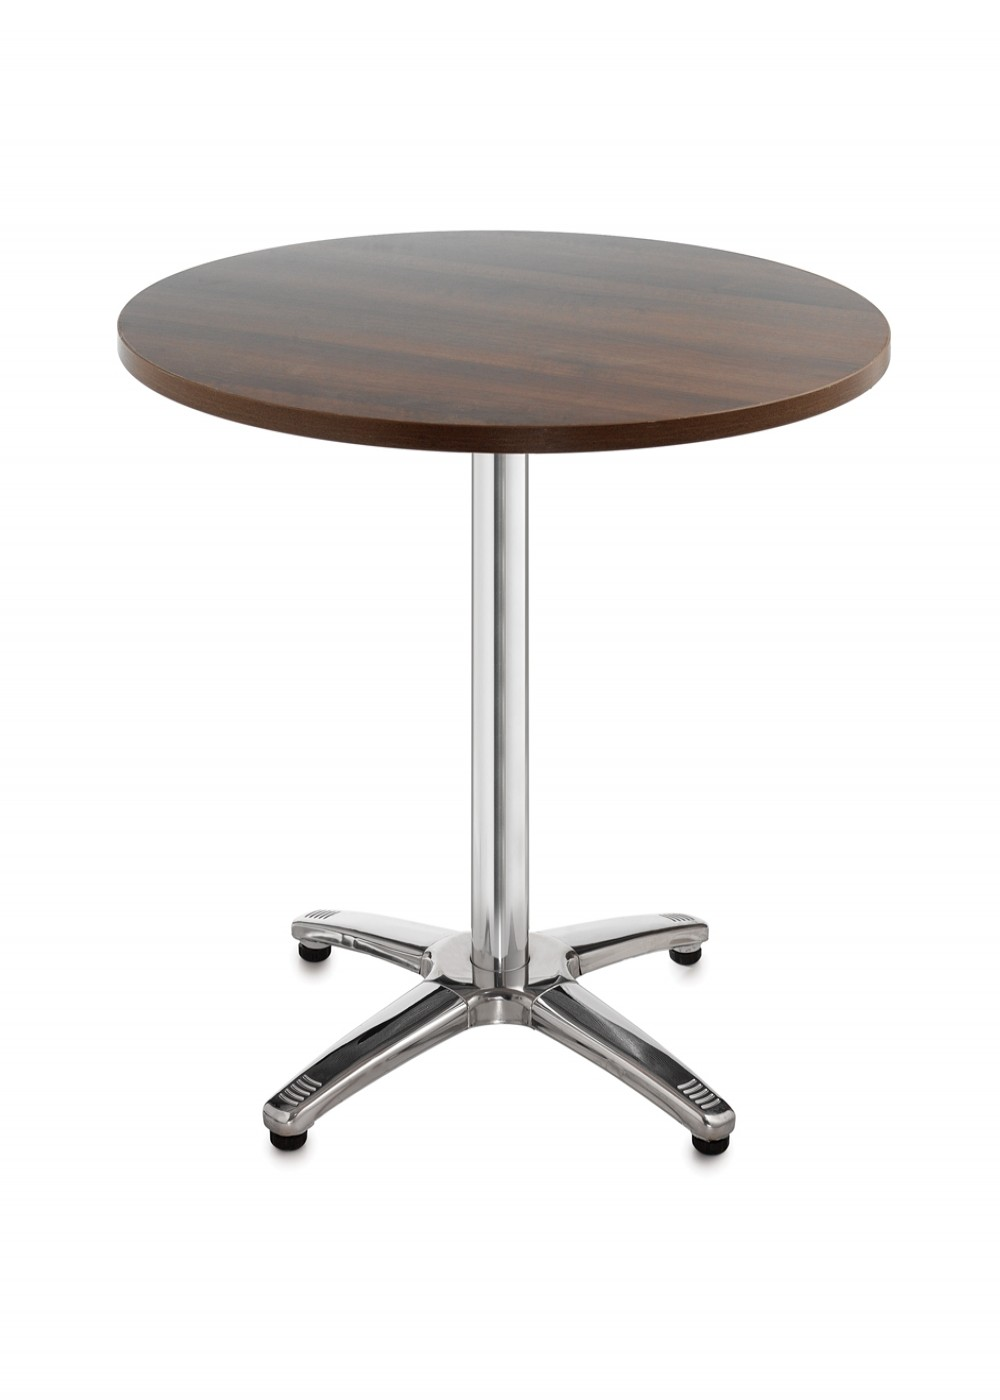 Bistro Or Cafe Round Table R6BT   Roma Aluminium 600mm Wide   Enlarged View